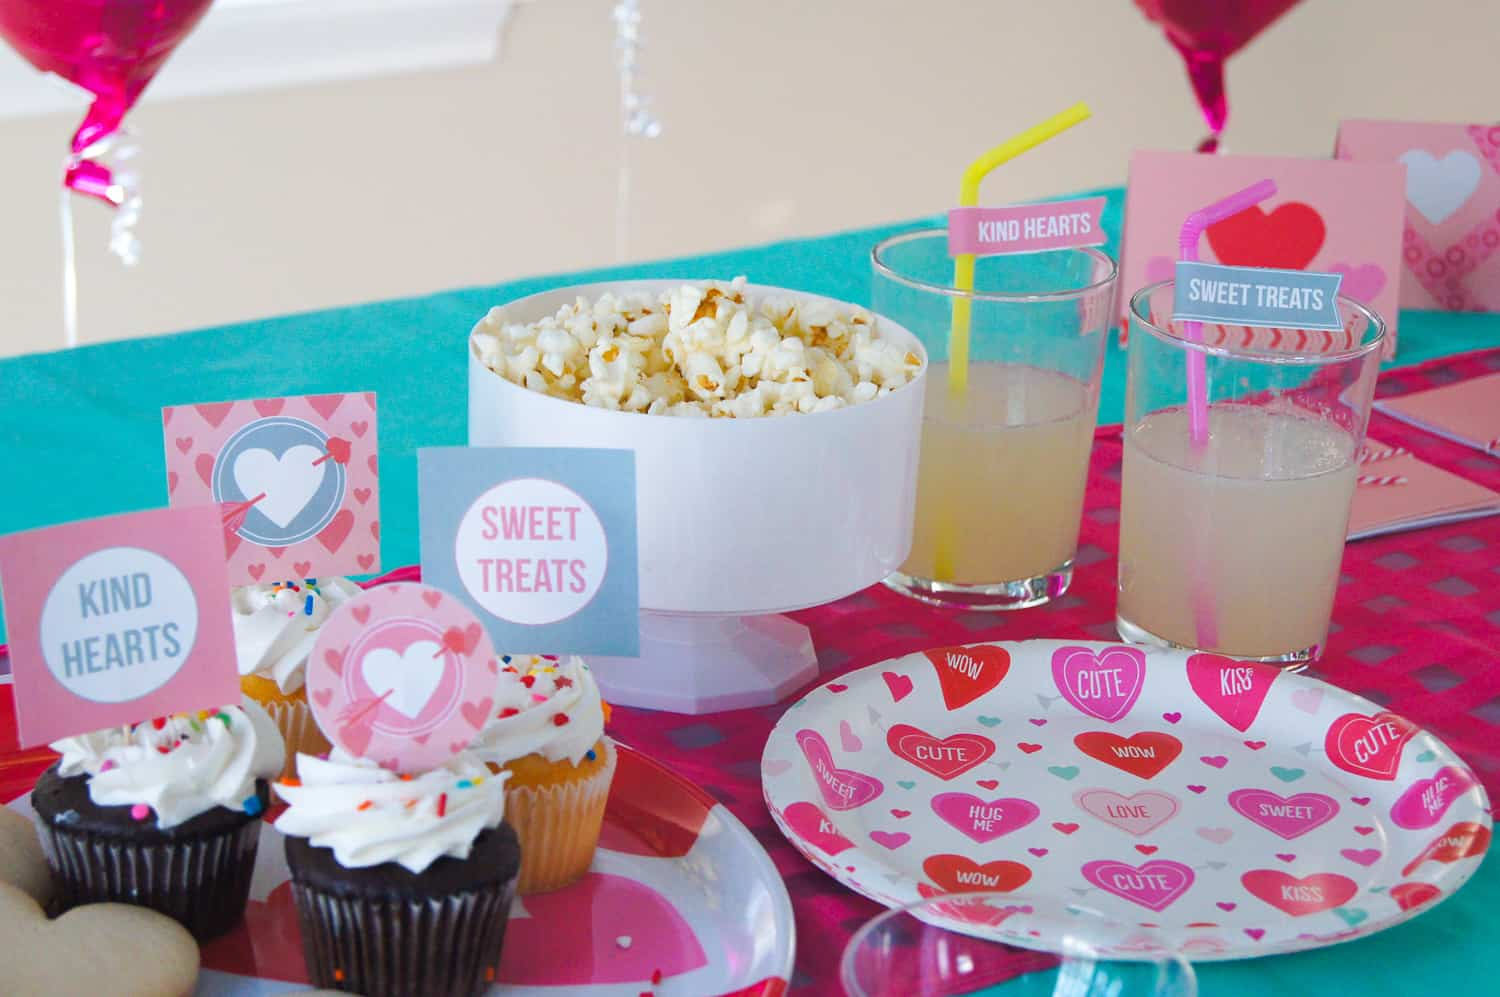 Sweet Treats + Kind Hearts Play Date Party Food